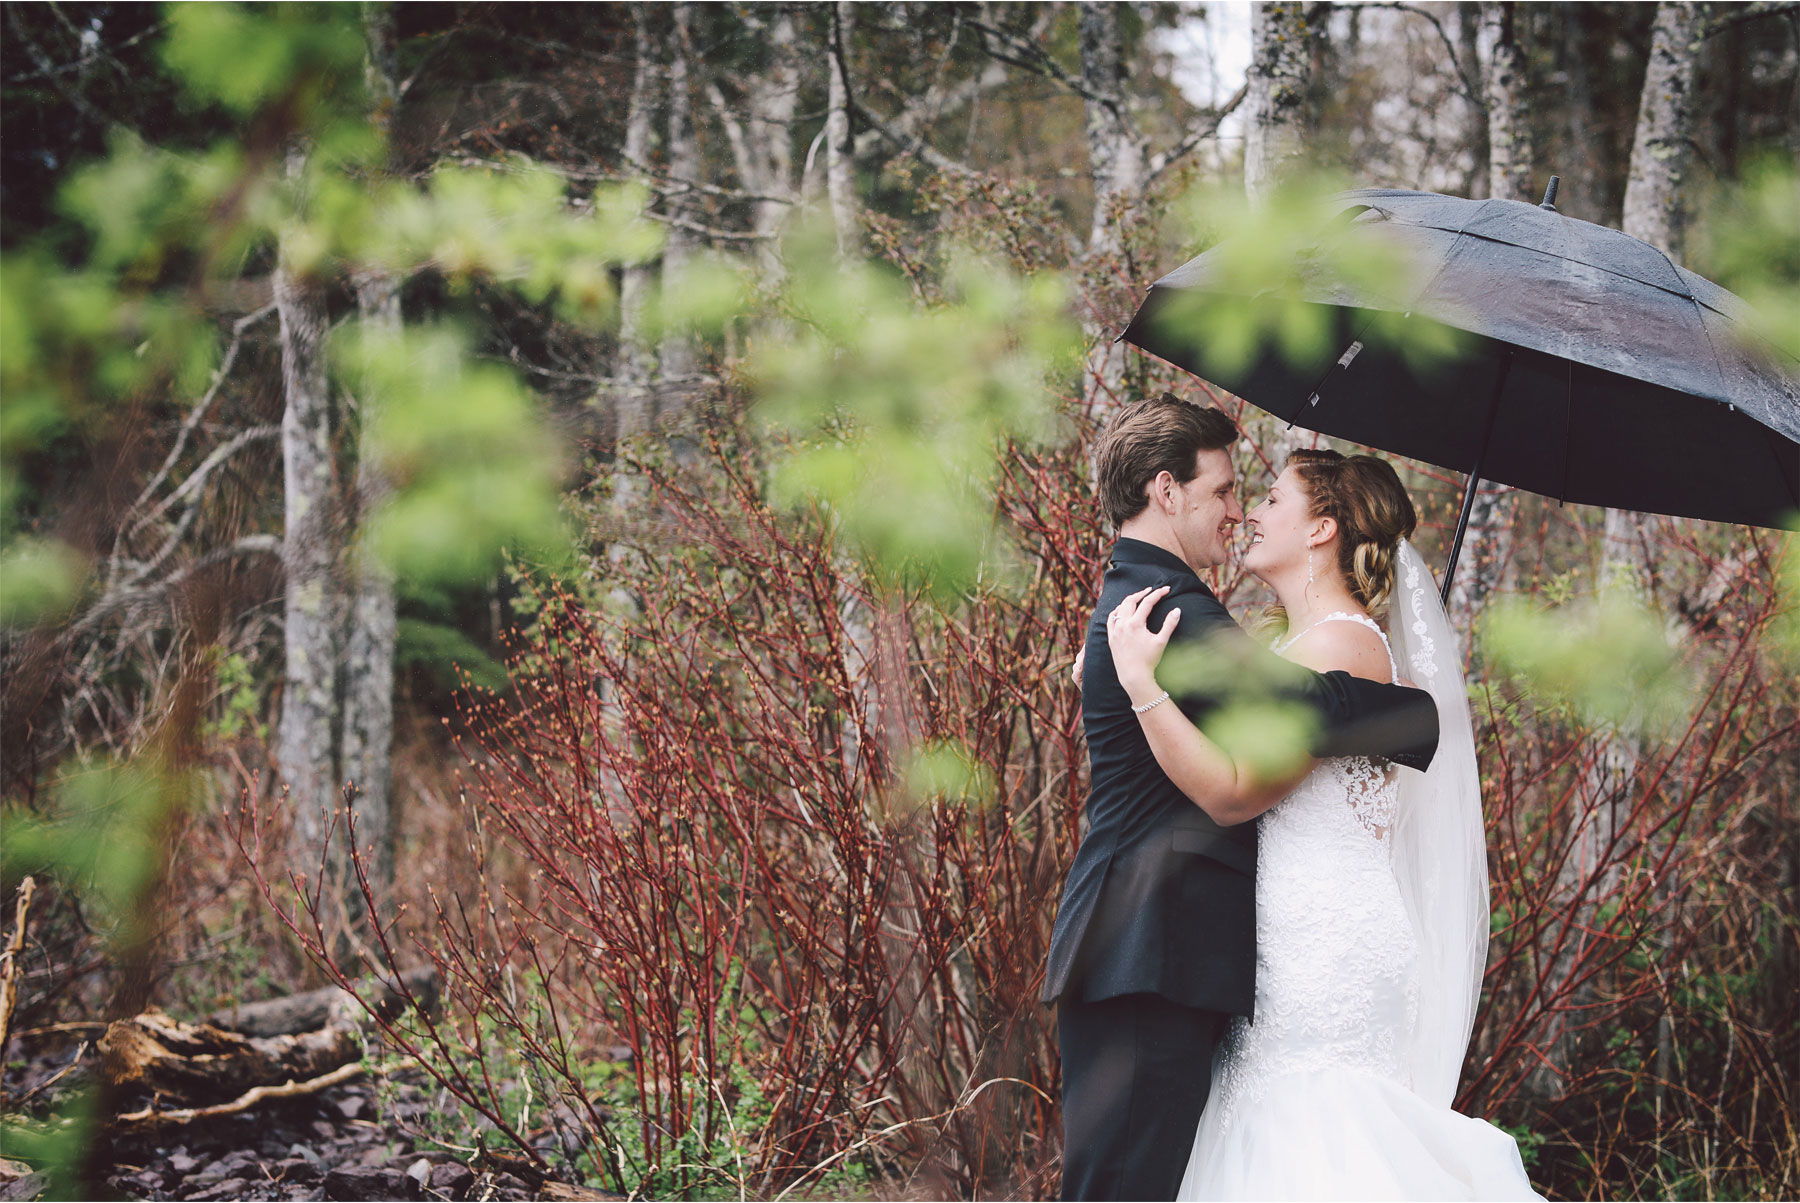 10-Minnesota-Wedding-by-Andrew-Vick-Photography-Grand-Superior-Lodge-Duluth-Two-Harbors-Bride-Dress-Lake-Superior-Rain-Umbrella-Woods-Groom-Veronica-and-Tyler.jpg